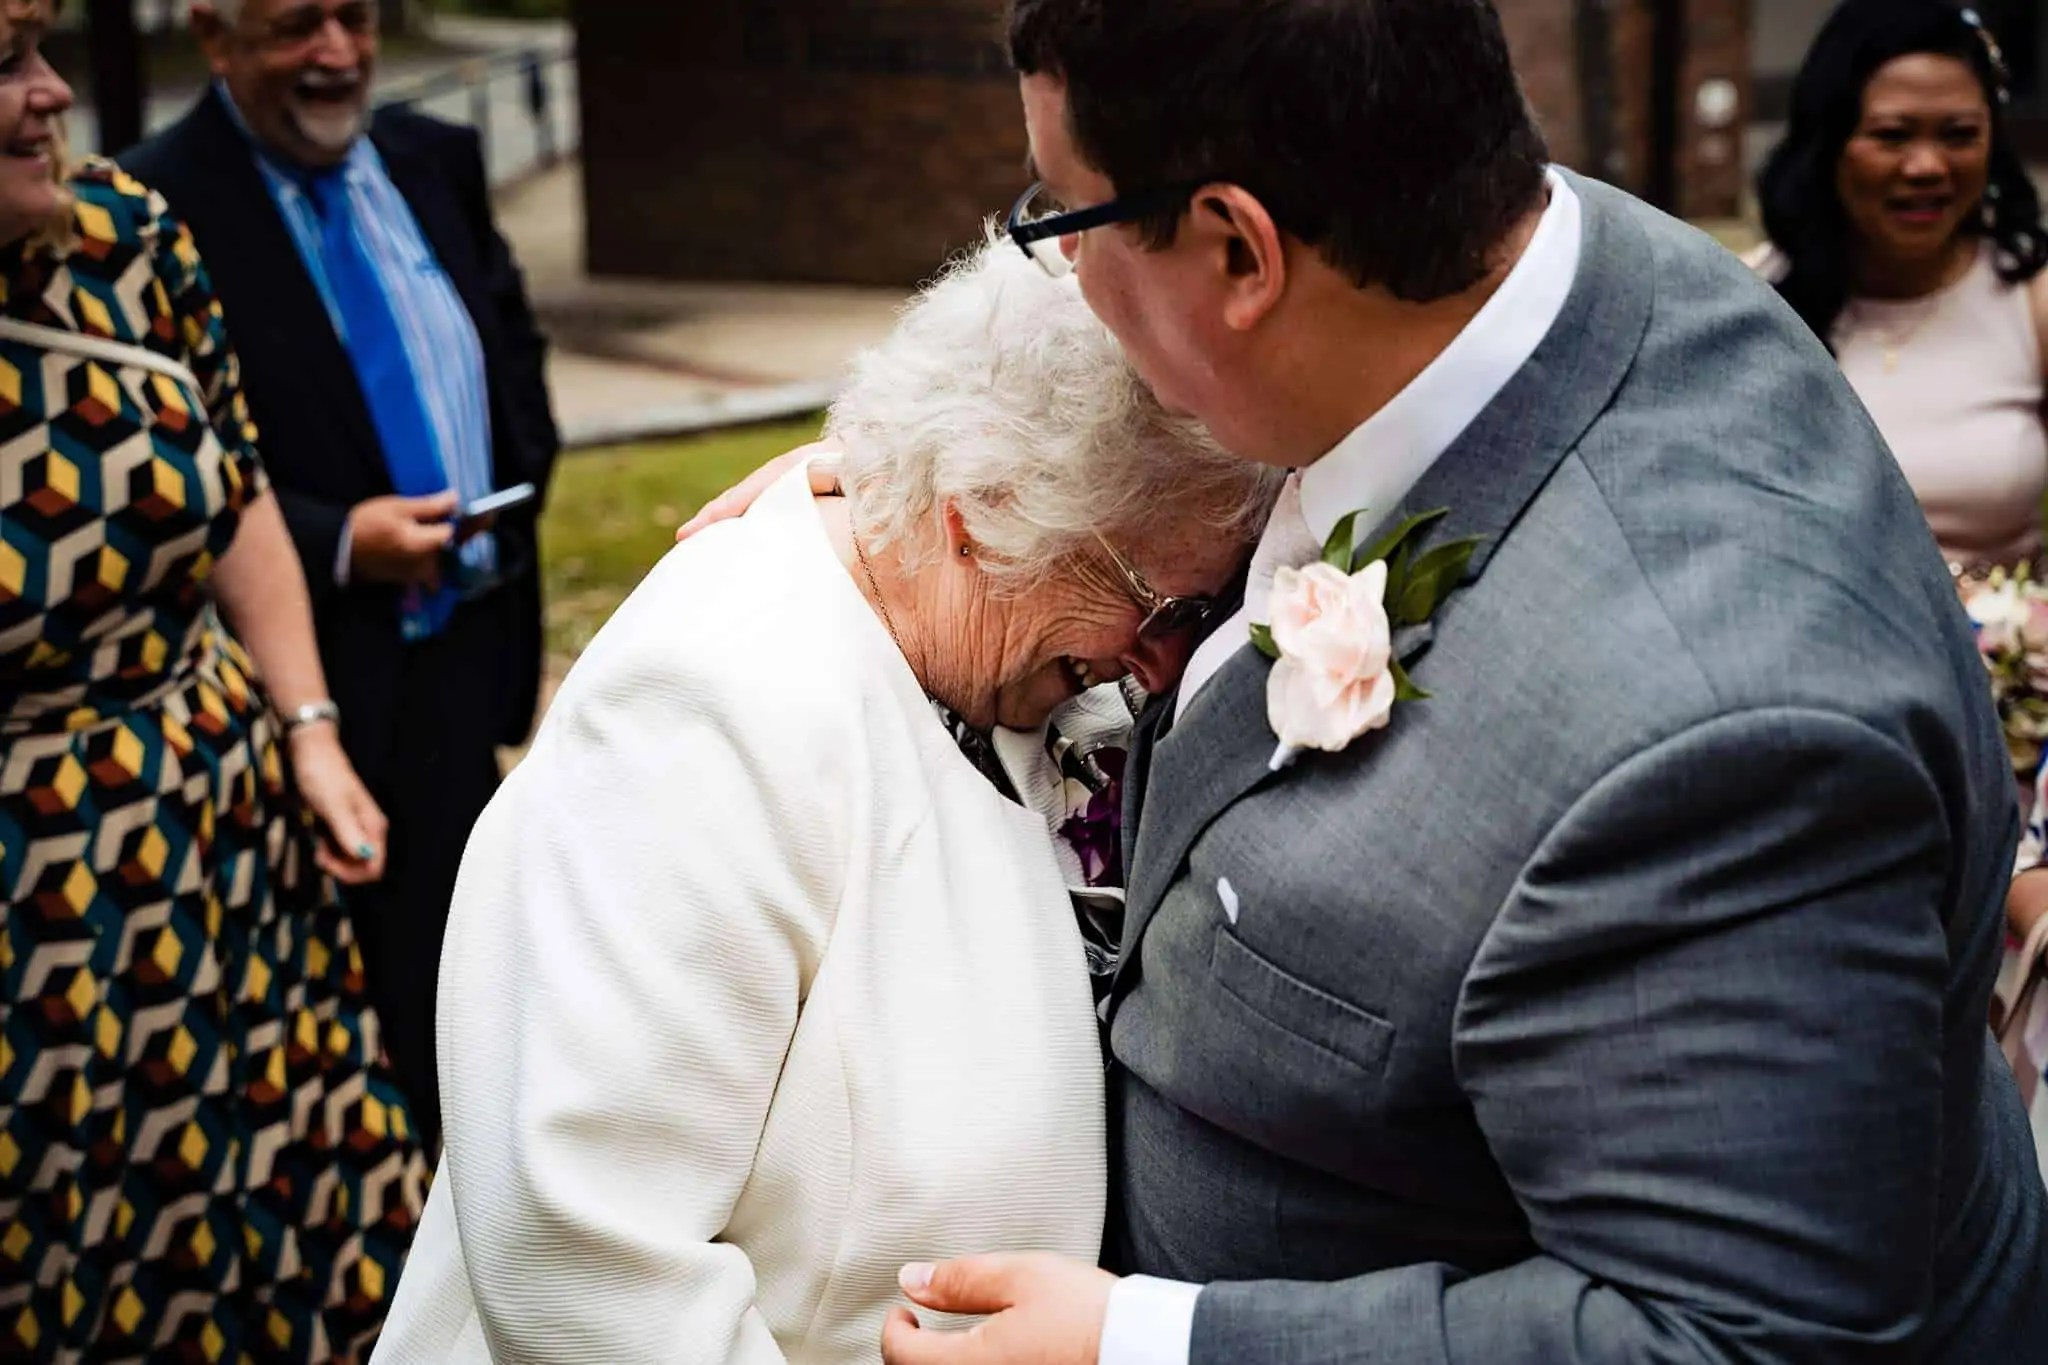 A groom and his mum sharing a tender hug after he has got married